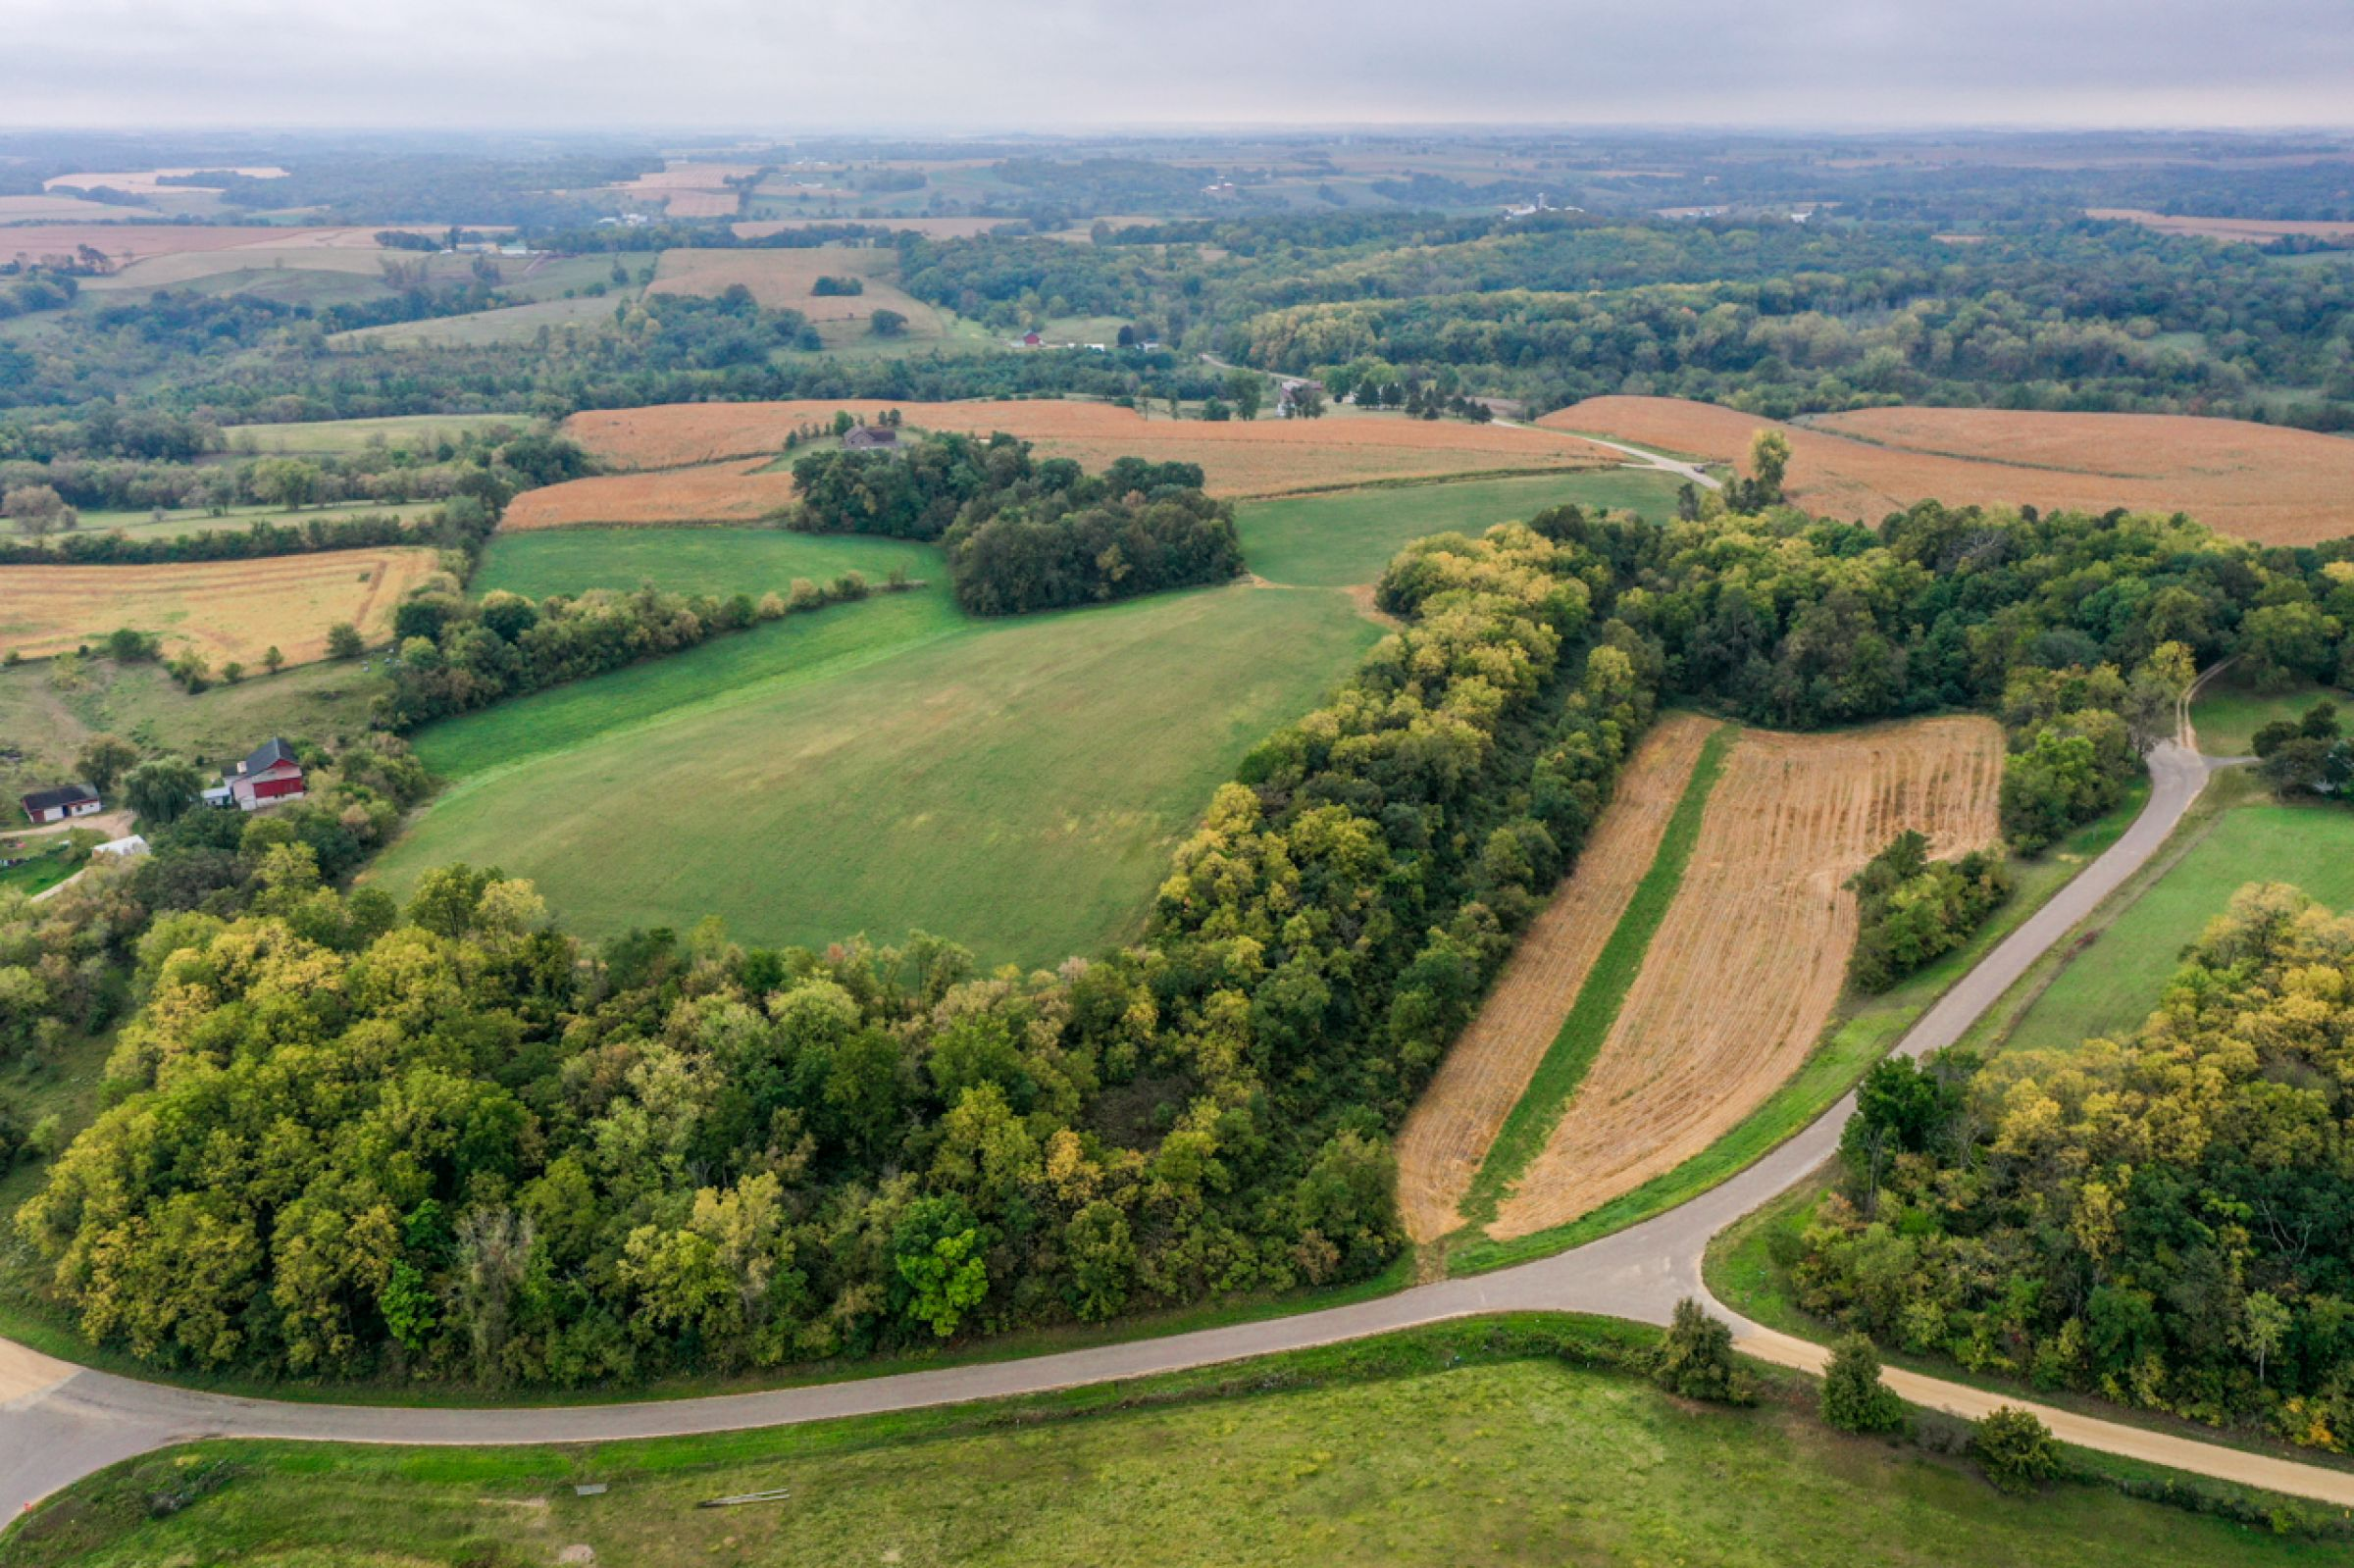 auctions-land-lafayette-county-wisconsin-138-acres-listing-number-15758-6-2021-09-21-155933.jpg